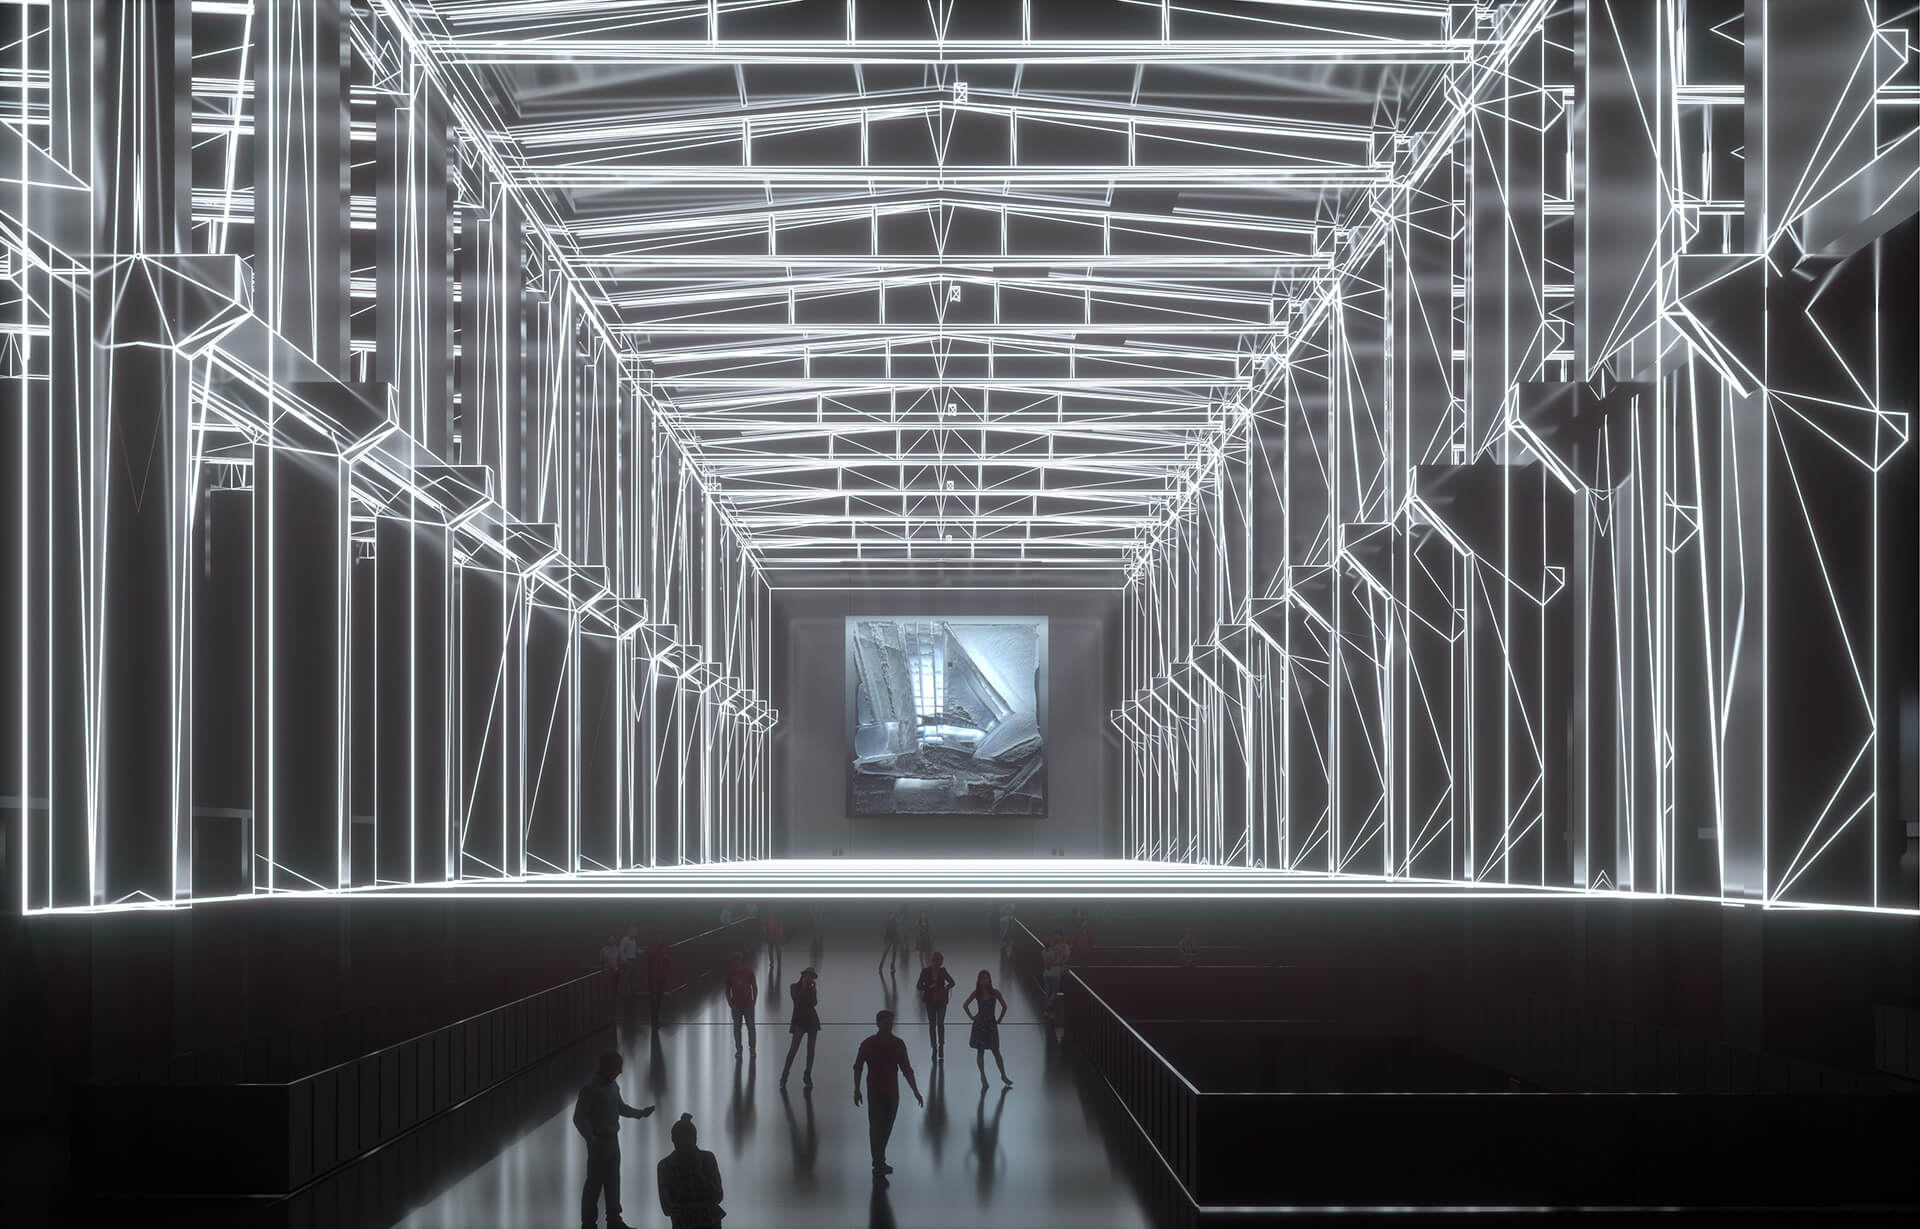 Latent Being responds to the cathedral-like concrete vastness of Kraftwerk Berlin, a former power plant | Latent Being | Refik Anadol | STIRworld